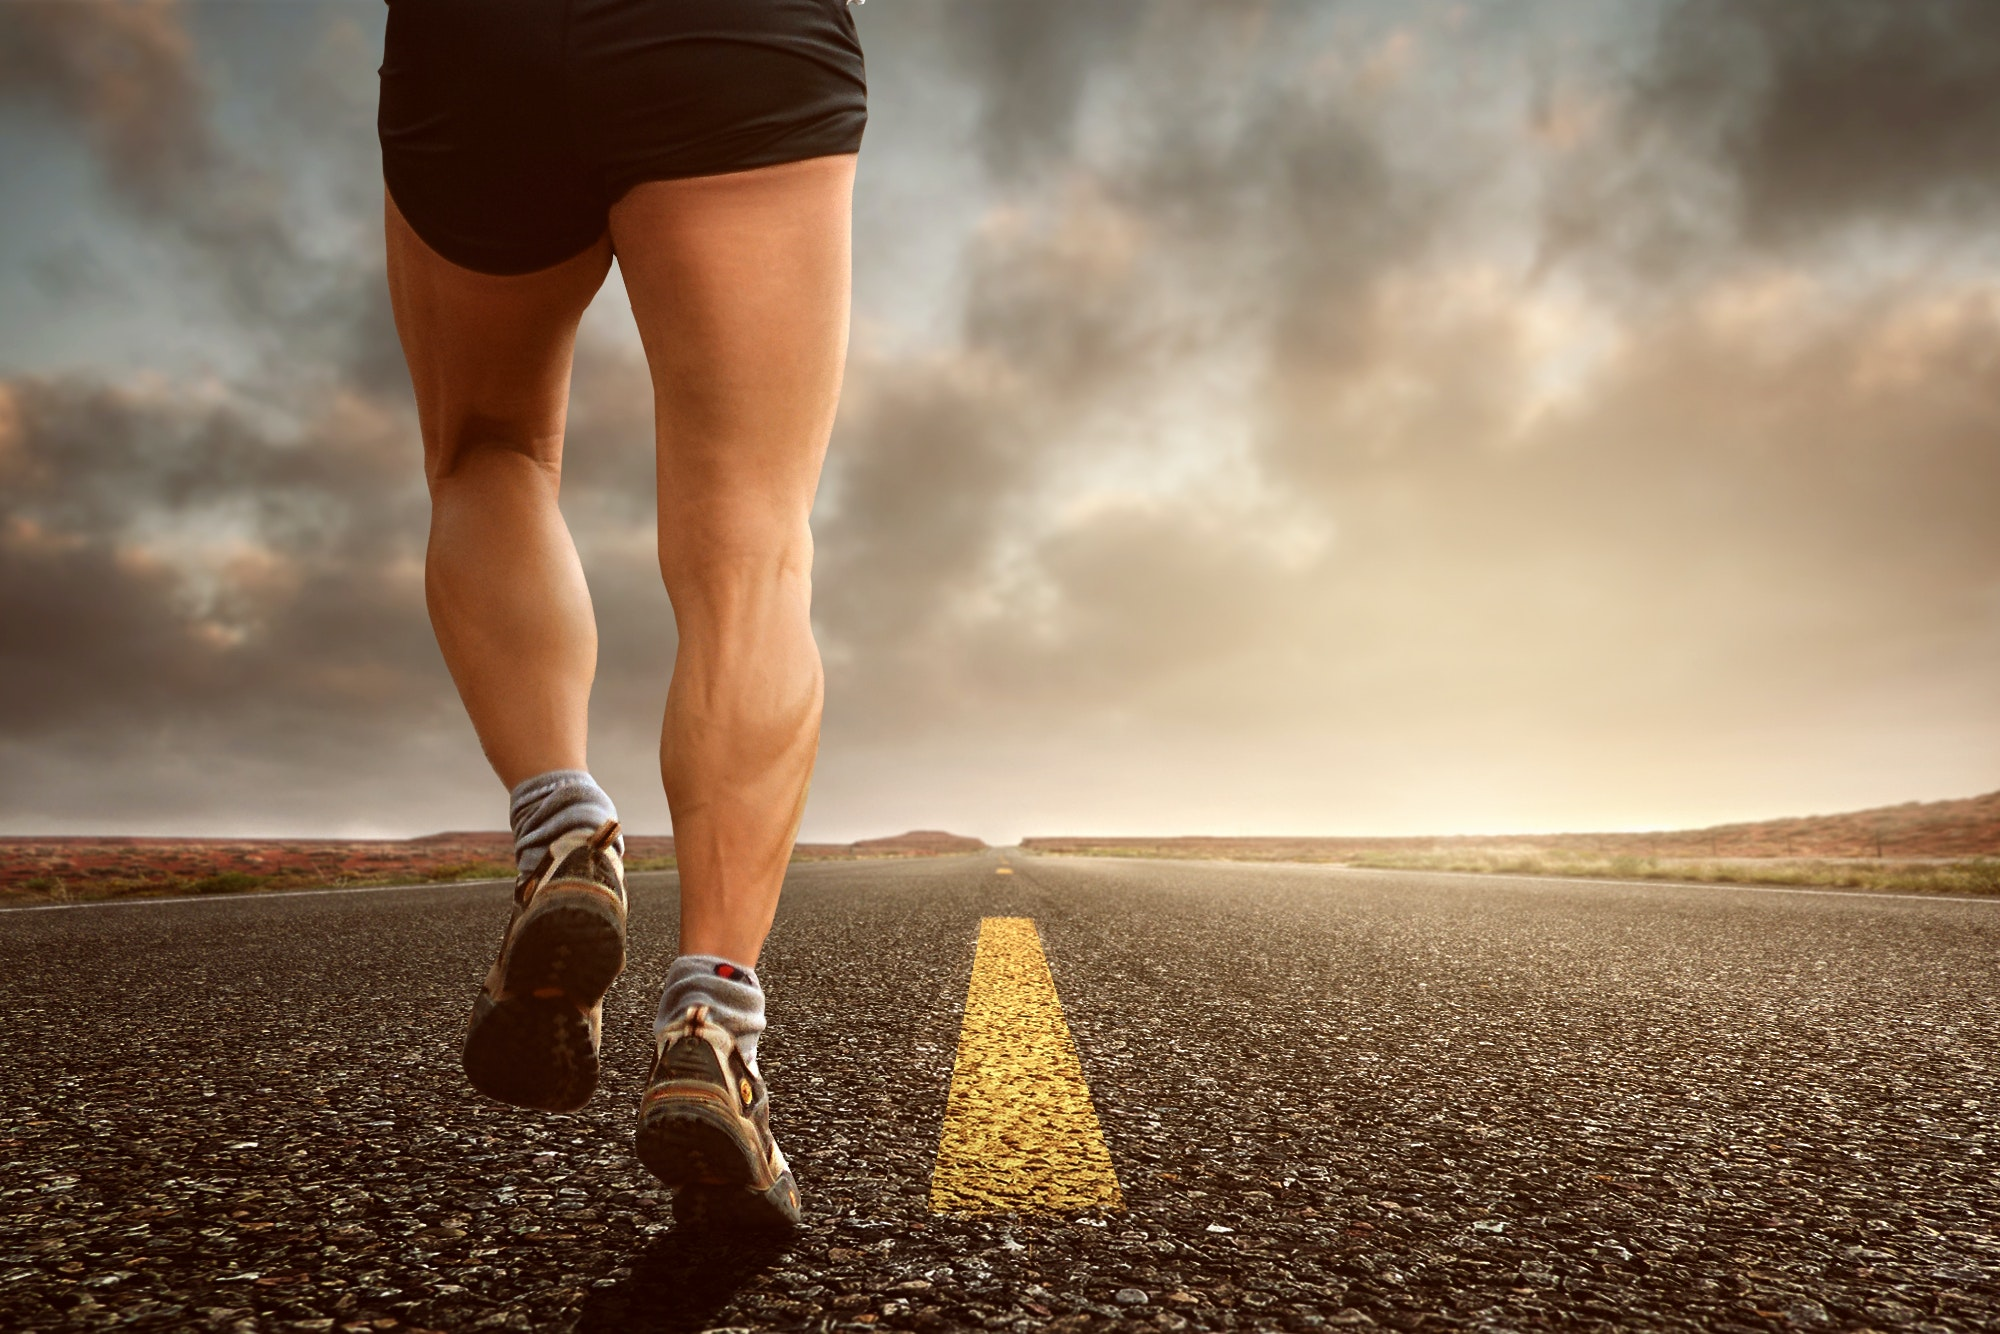 Photo of a man running showing just his lower half and legs in the middle of the road